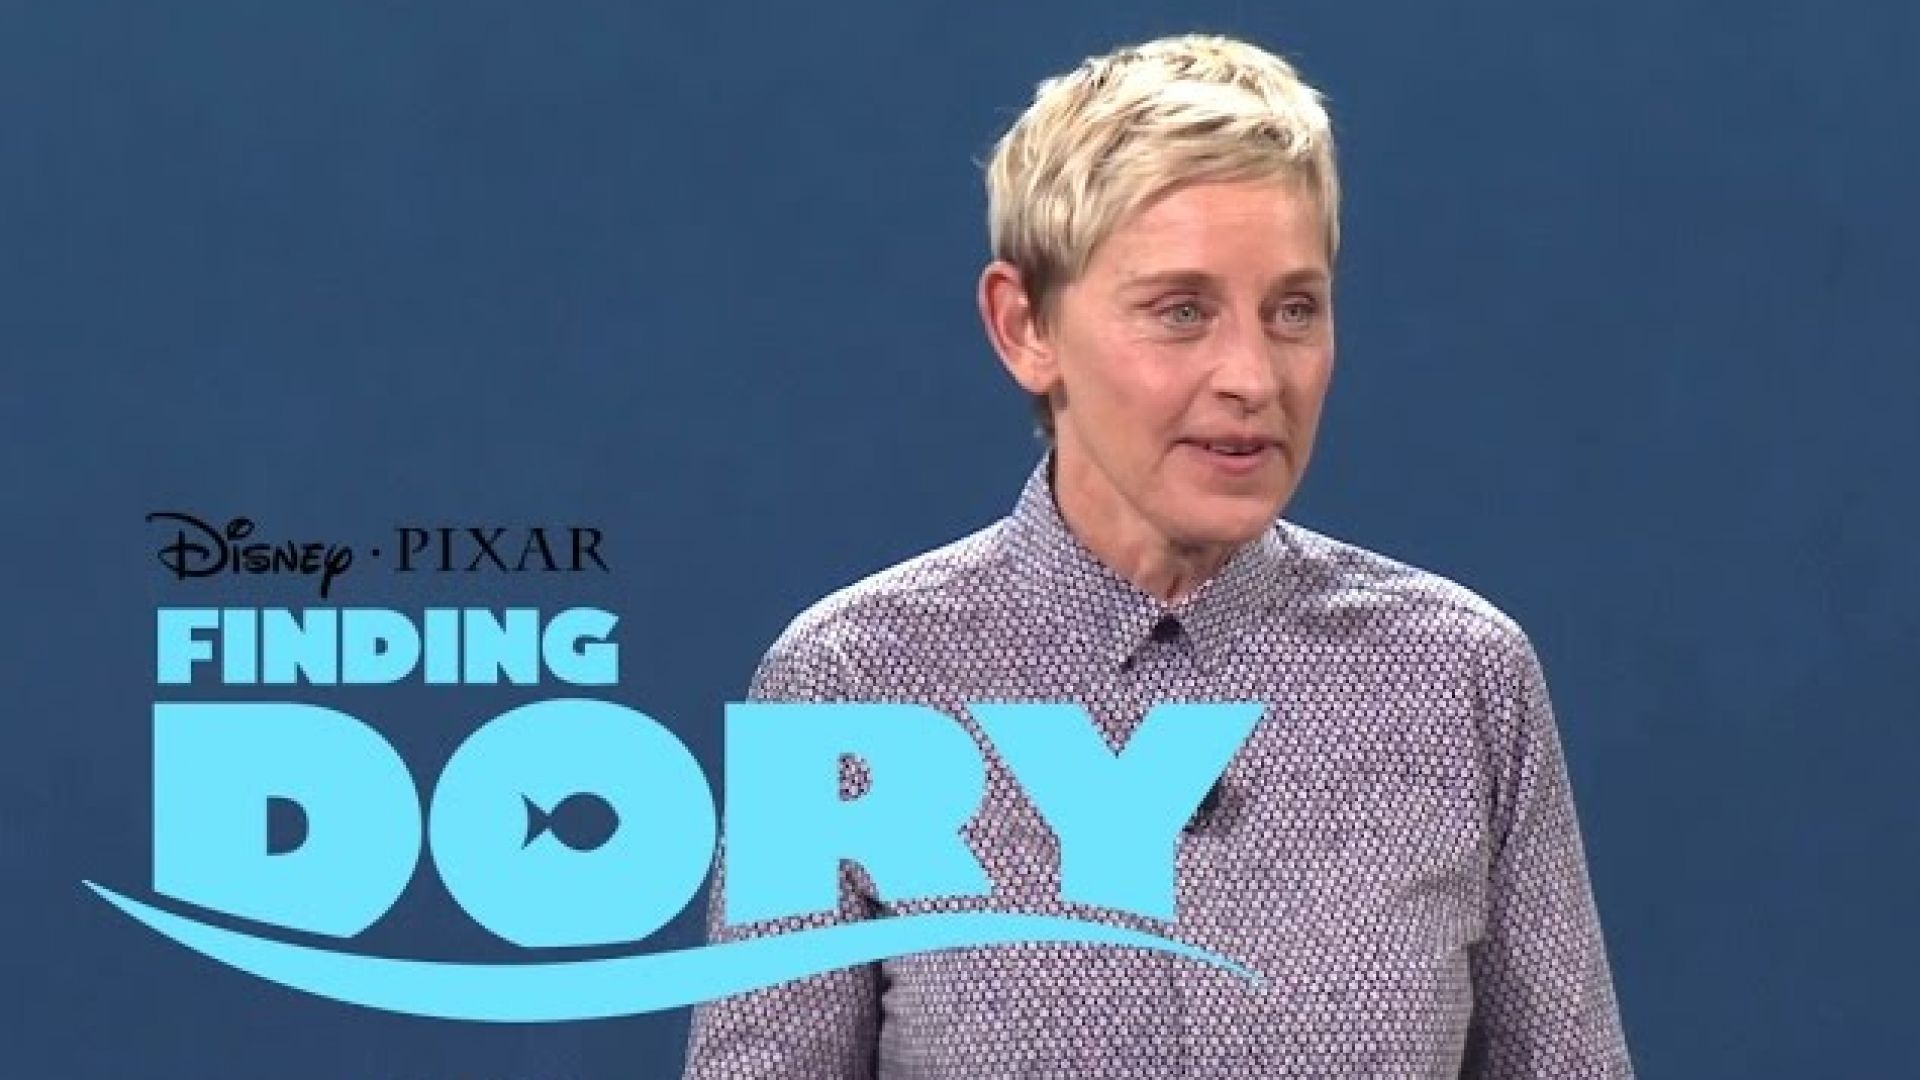 Pixar's 'Finding Dory' D23 Expo Panel Presentation with Elle